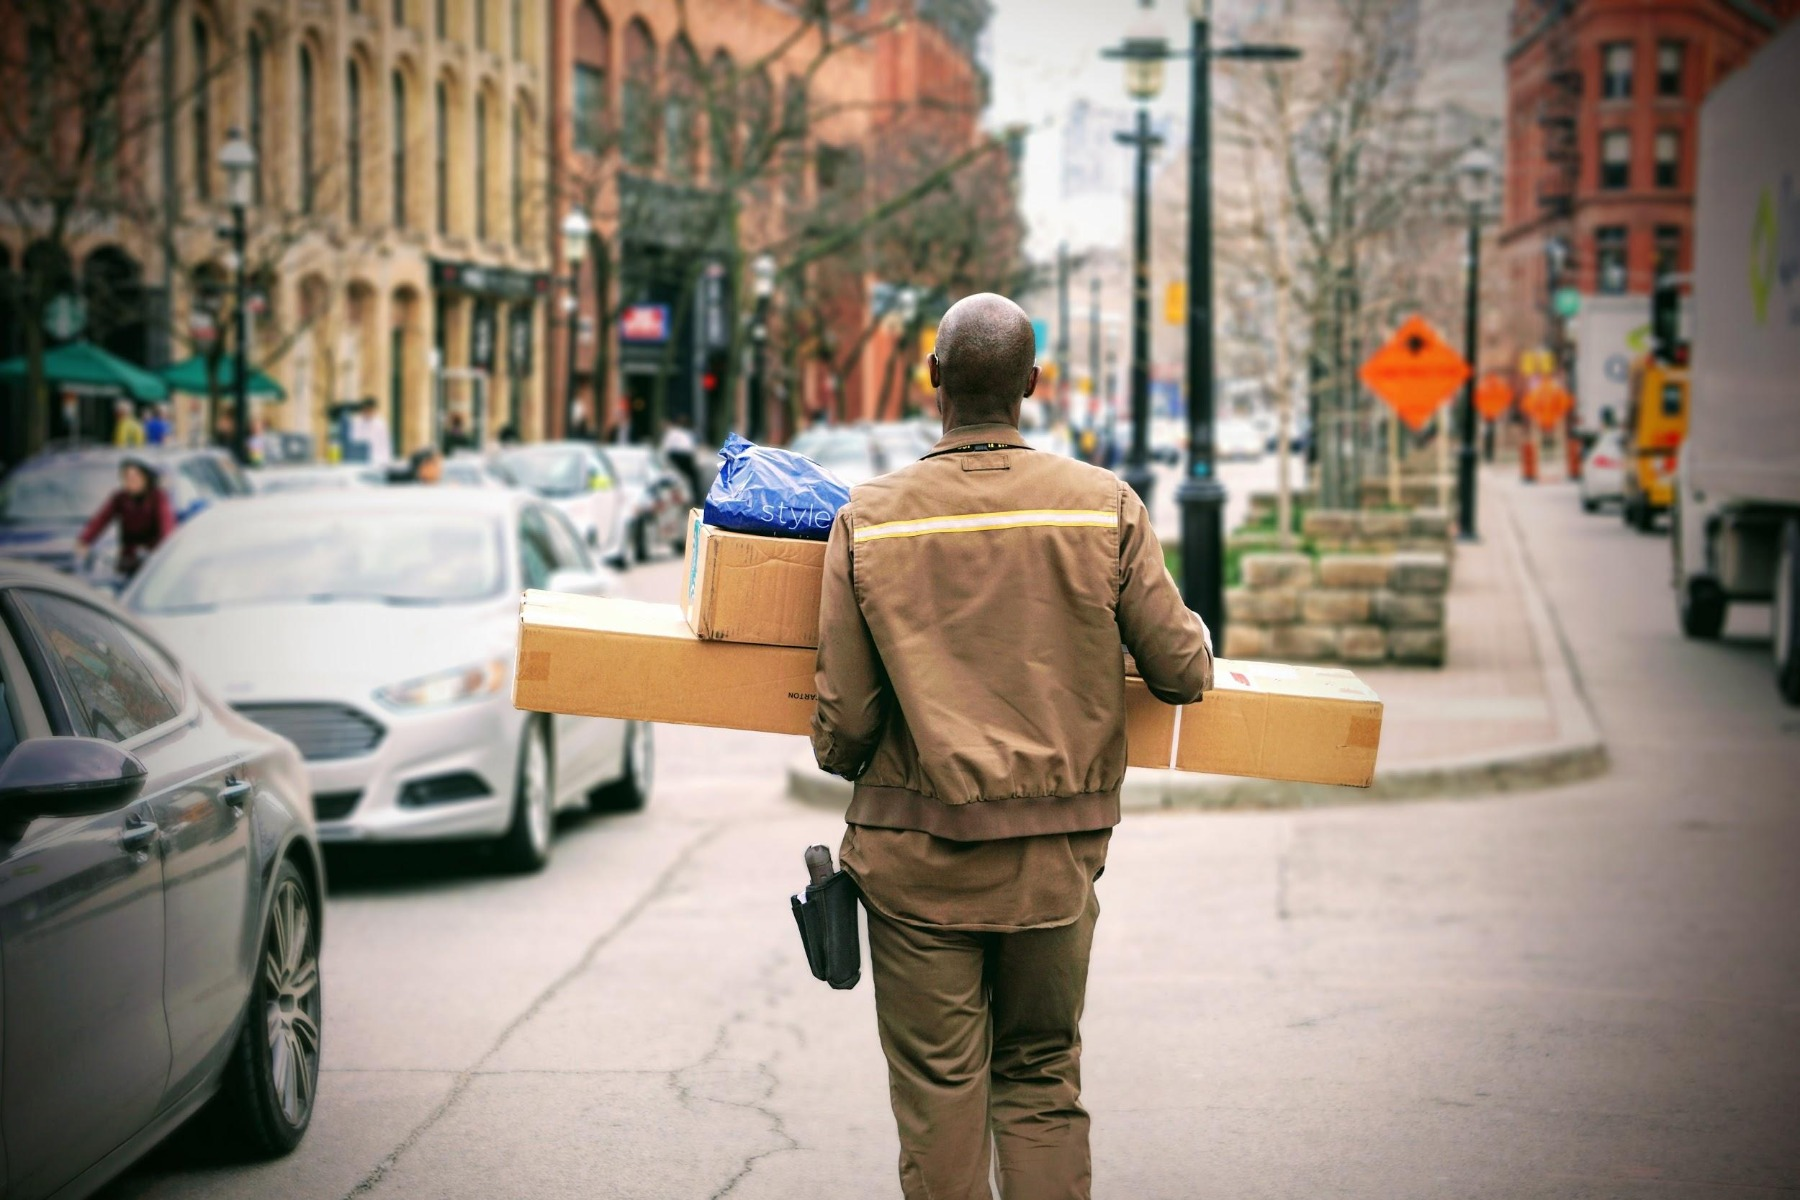 Delivery man on street carrying packages